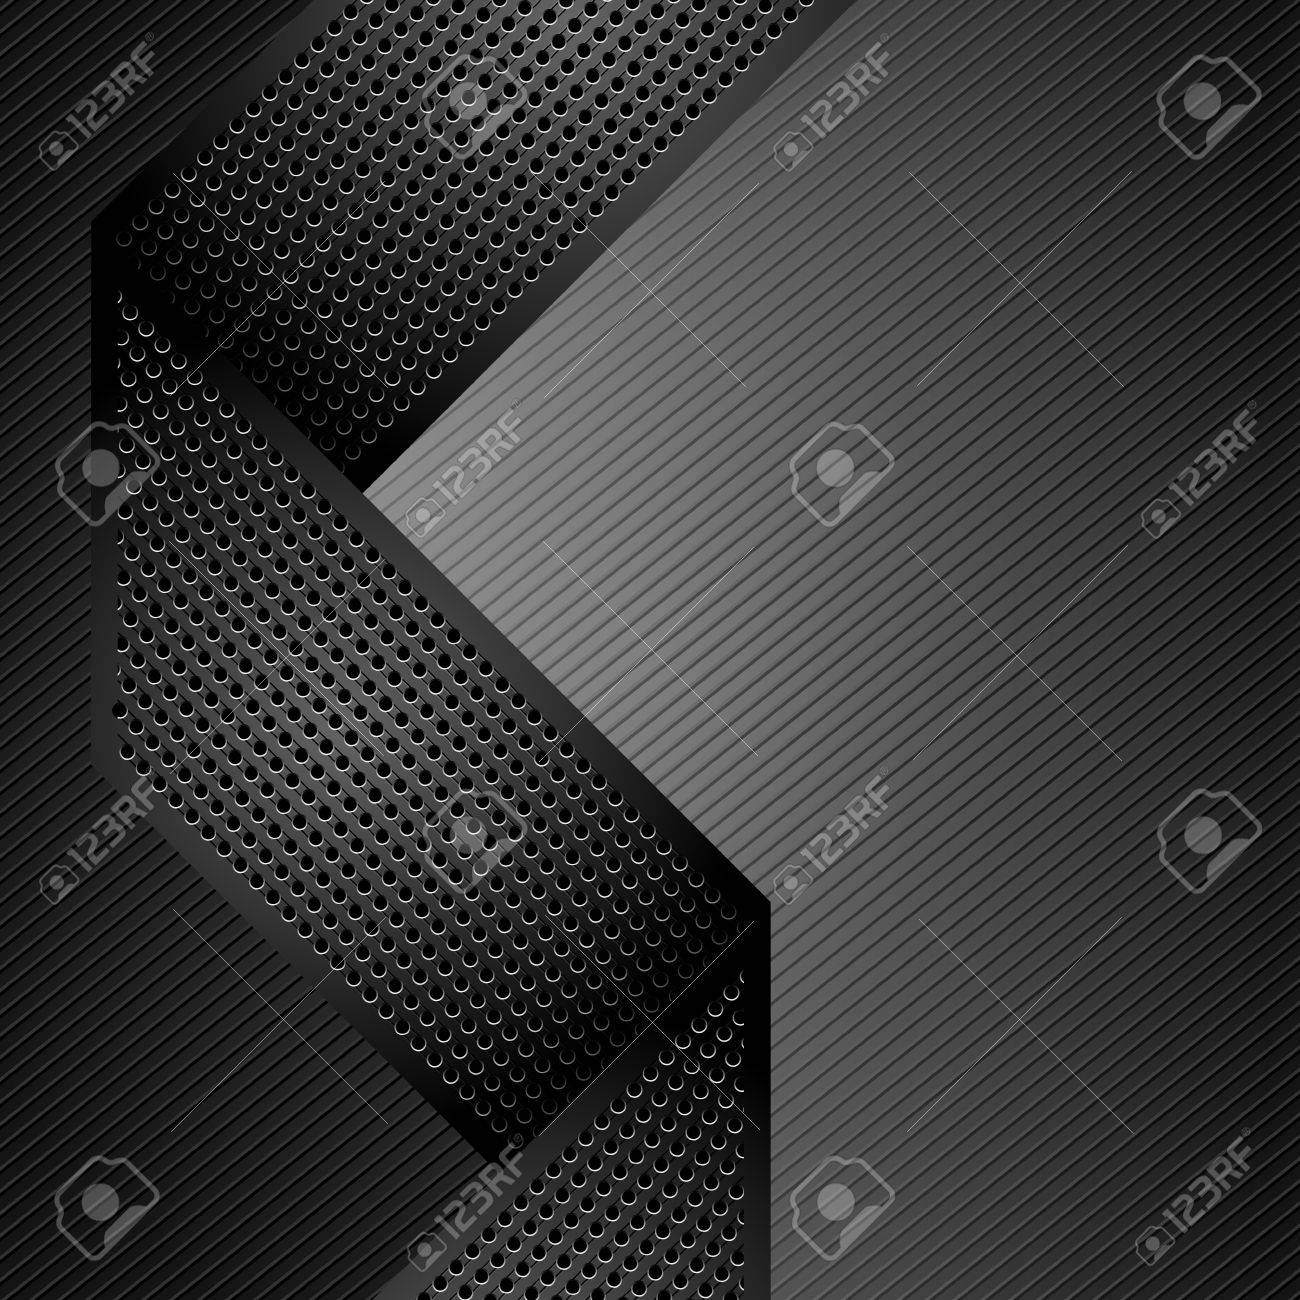 Metallic ribbons on gray corduroy background Stock Vector - 12802605